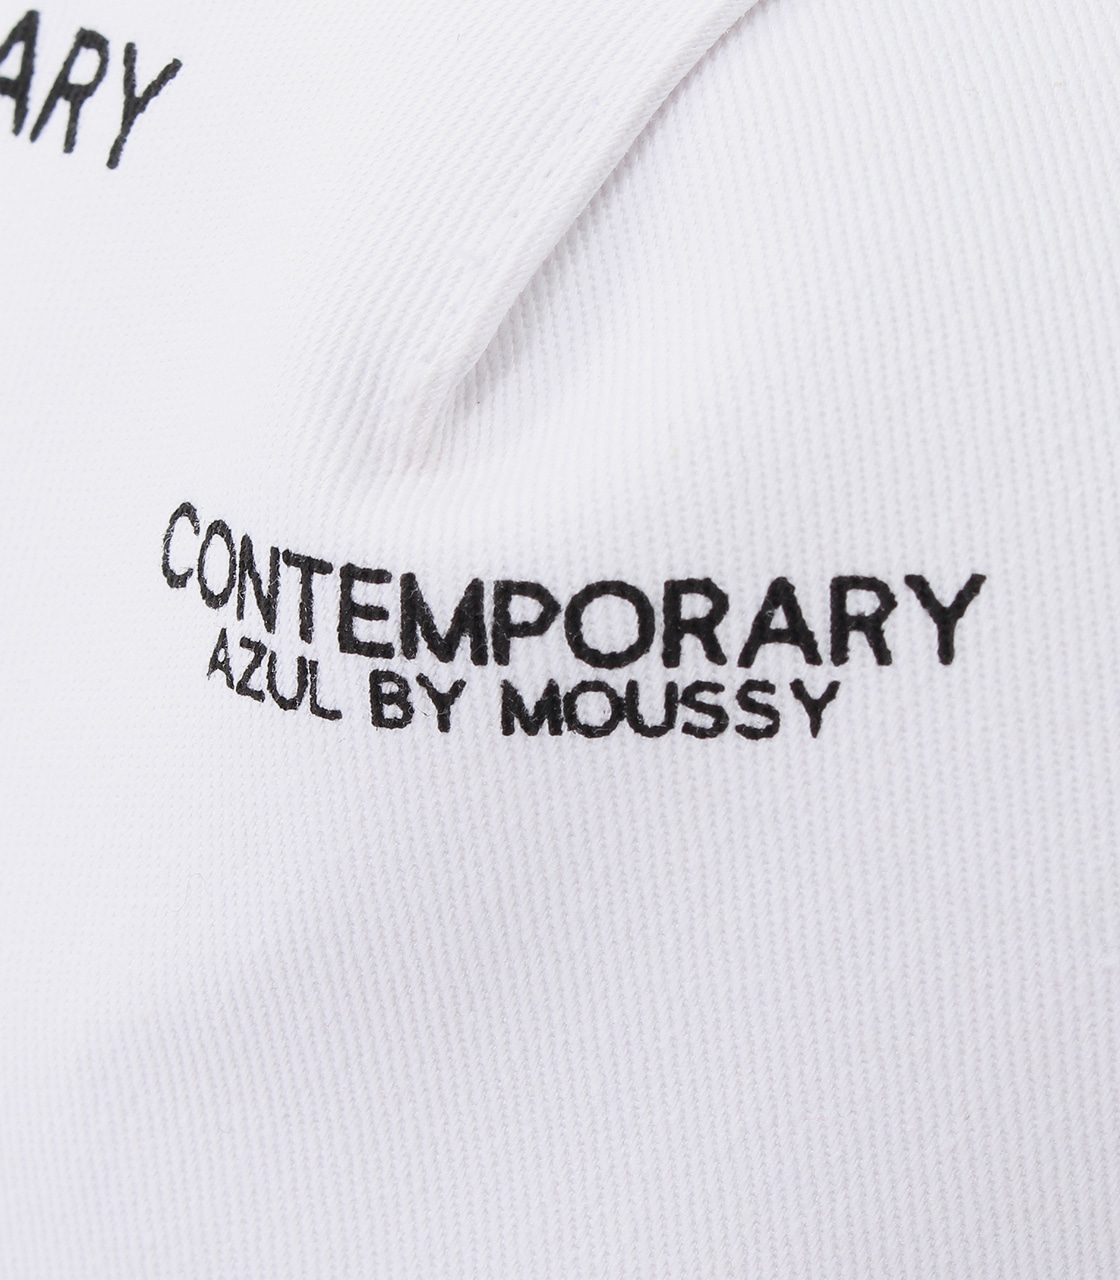 【AZUL BY MOUSSY】CONTEMPORARY 6PANEL CAP 詳細画像 柄WHT 6